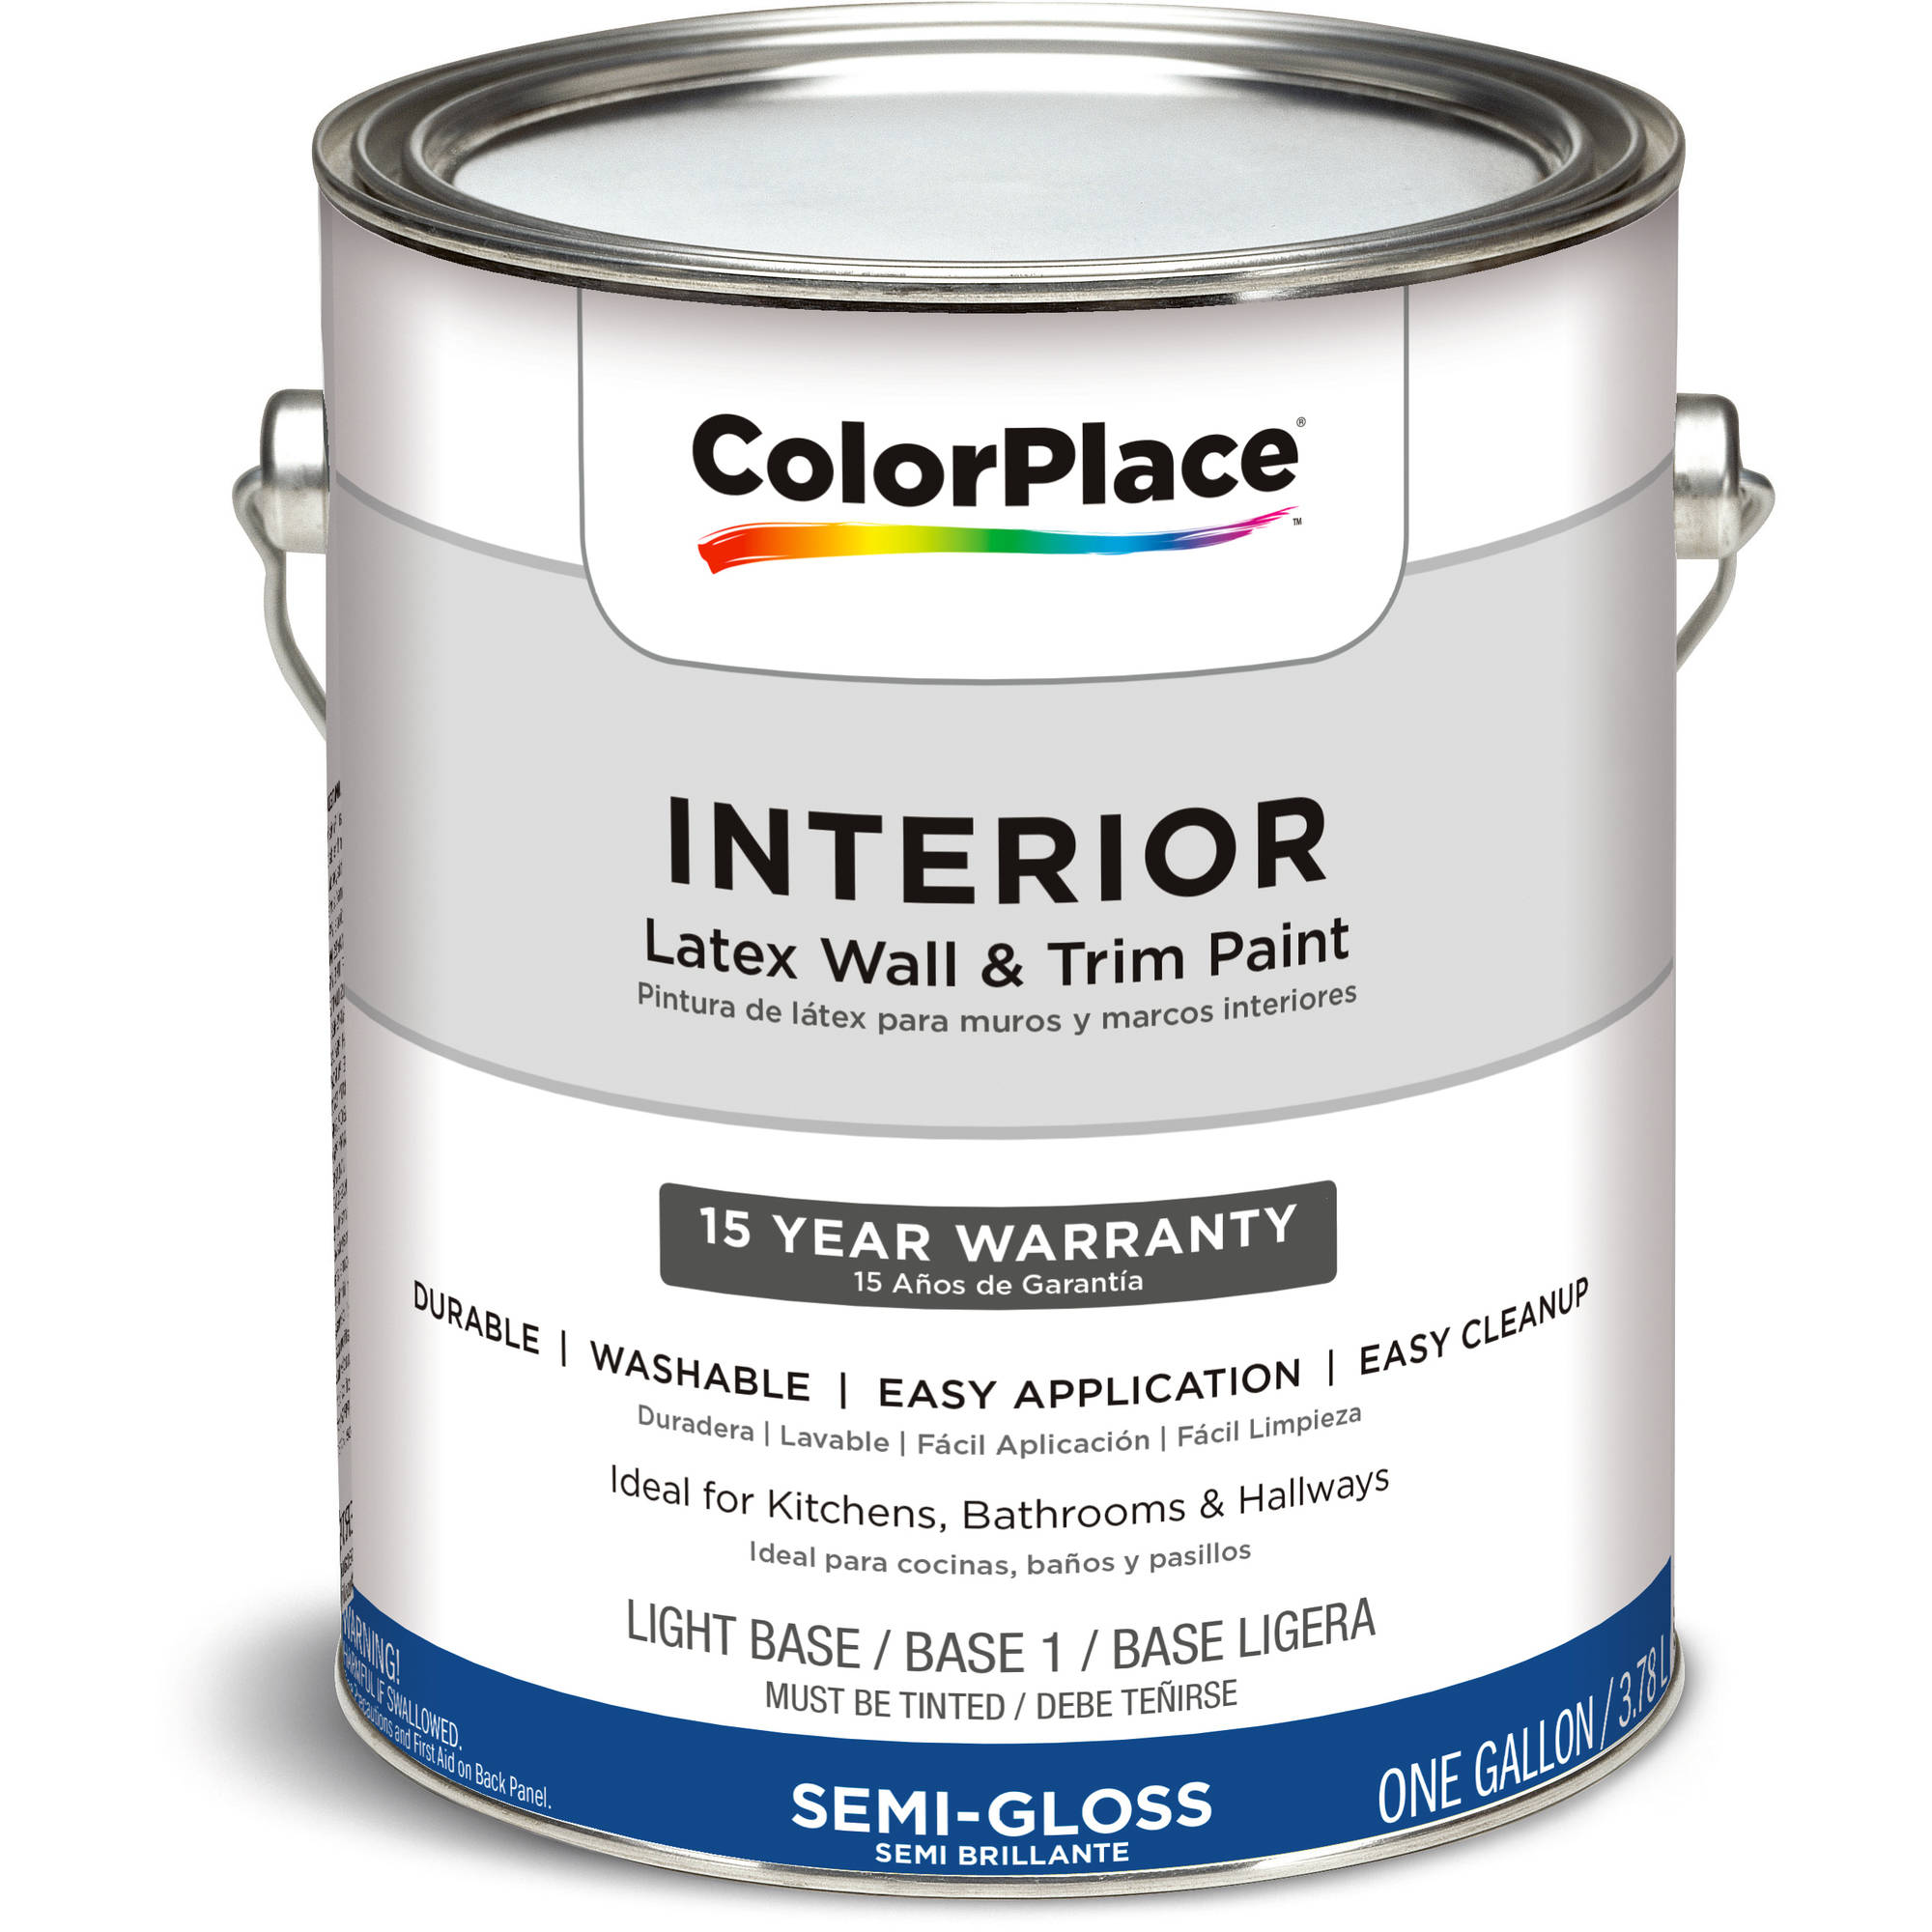 Ordinaire ColorPlace Interior Paint Semi Gloss LB, 1 Gal